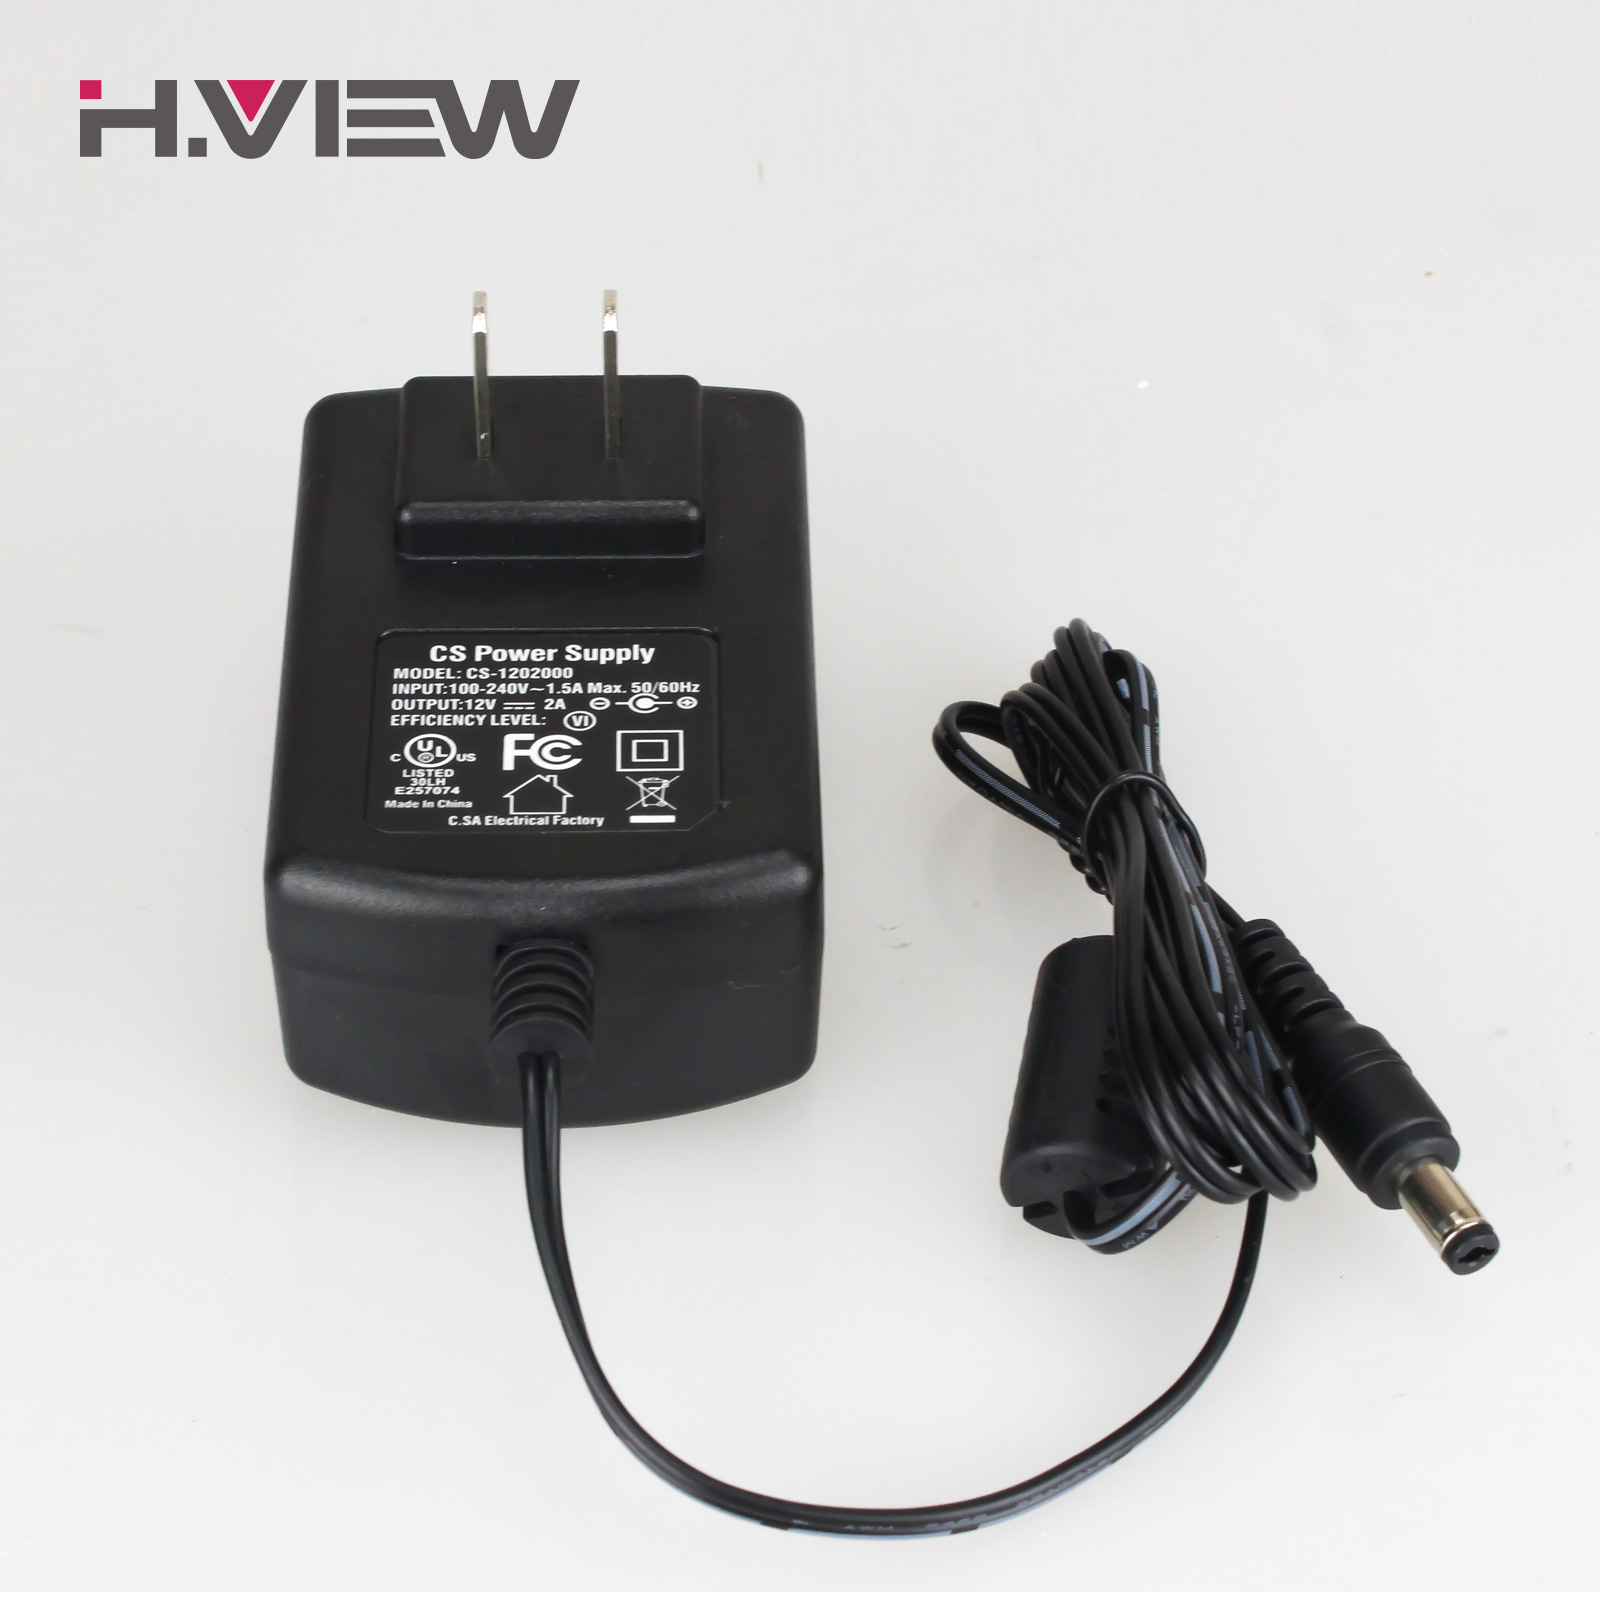 H.VIEW 12V 2A Power Supply For CCTV Camera System EU/UK/US/AU 12V DC Adapter FOR Security Camera system security uk us eu au 12 volt 1 amp power supply power adapter for cctv ir infrared night vision lamp dvr systems camera